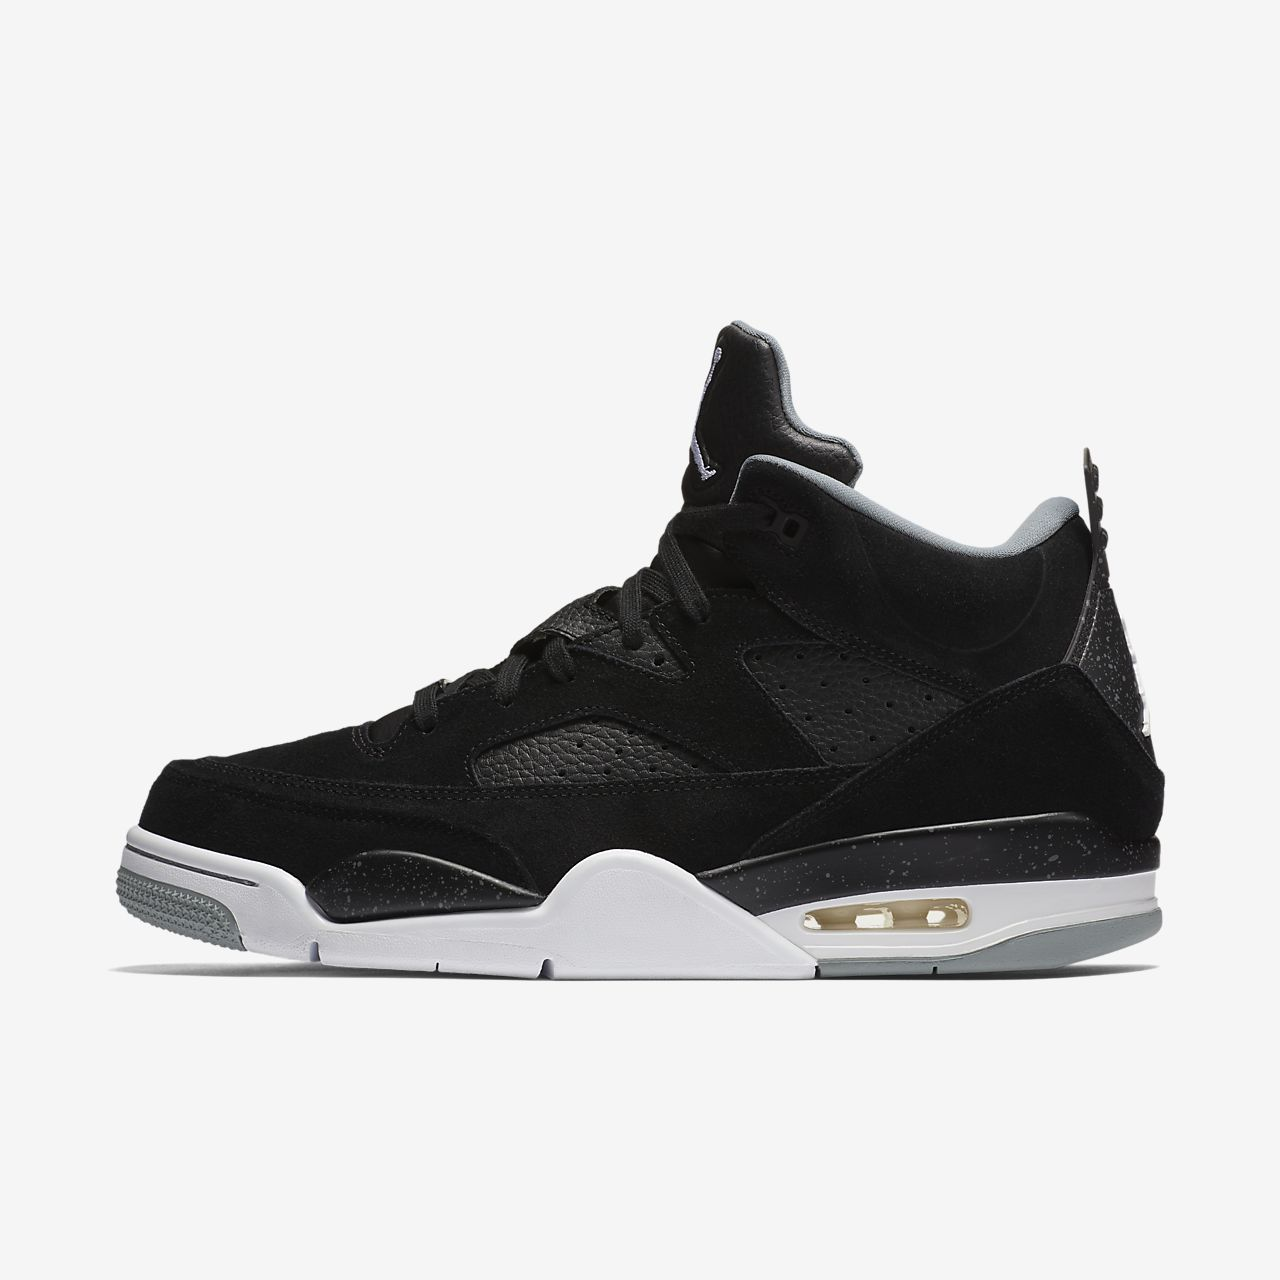 detailing 6f311 cc9d9 germany air jordan son of mars low available at nike 150. color hyper royal  black light smoke grey white 4d1ca 6adf8  cheapest jordan son of mars low  mens ...